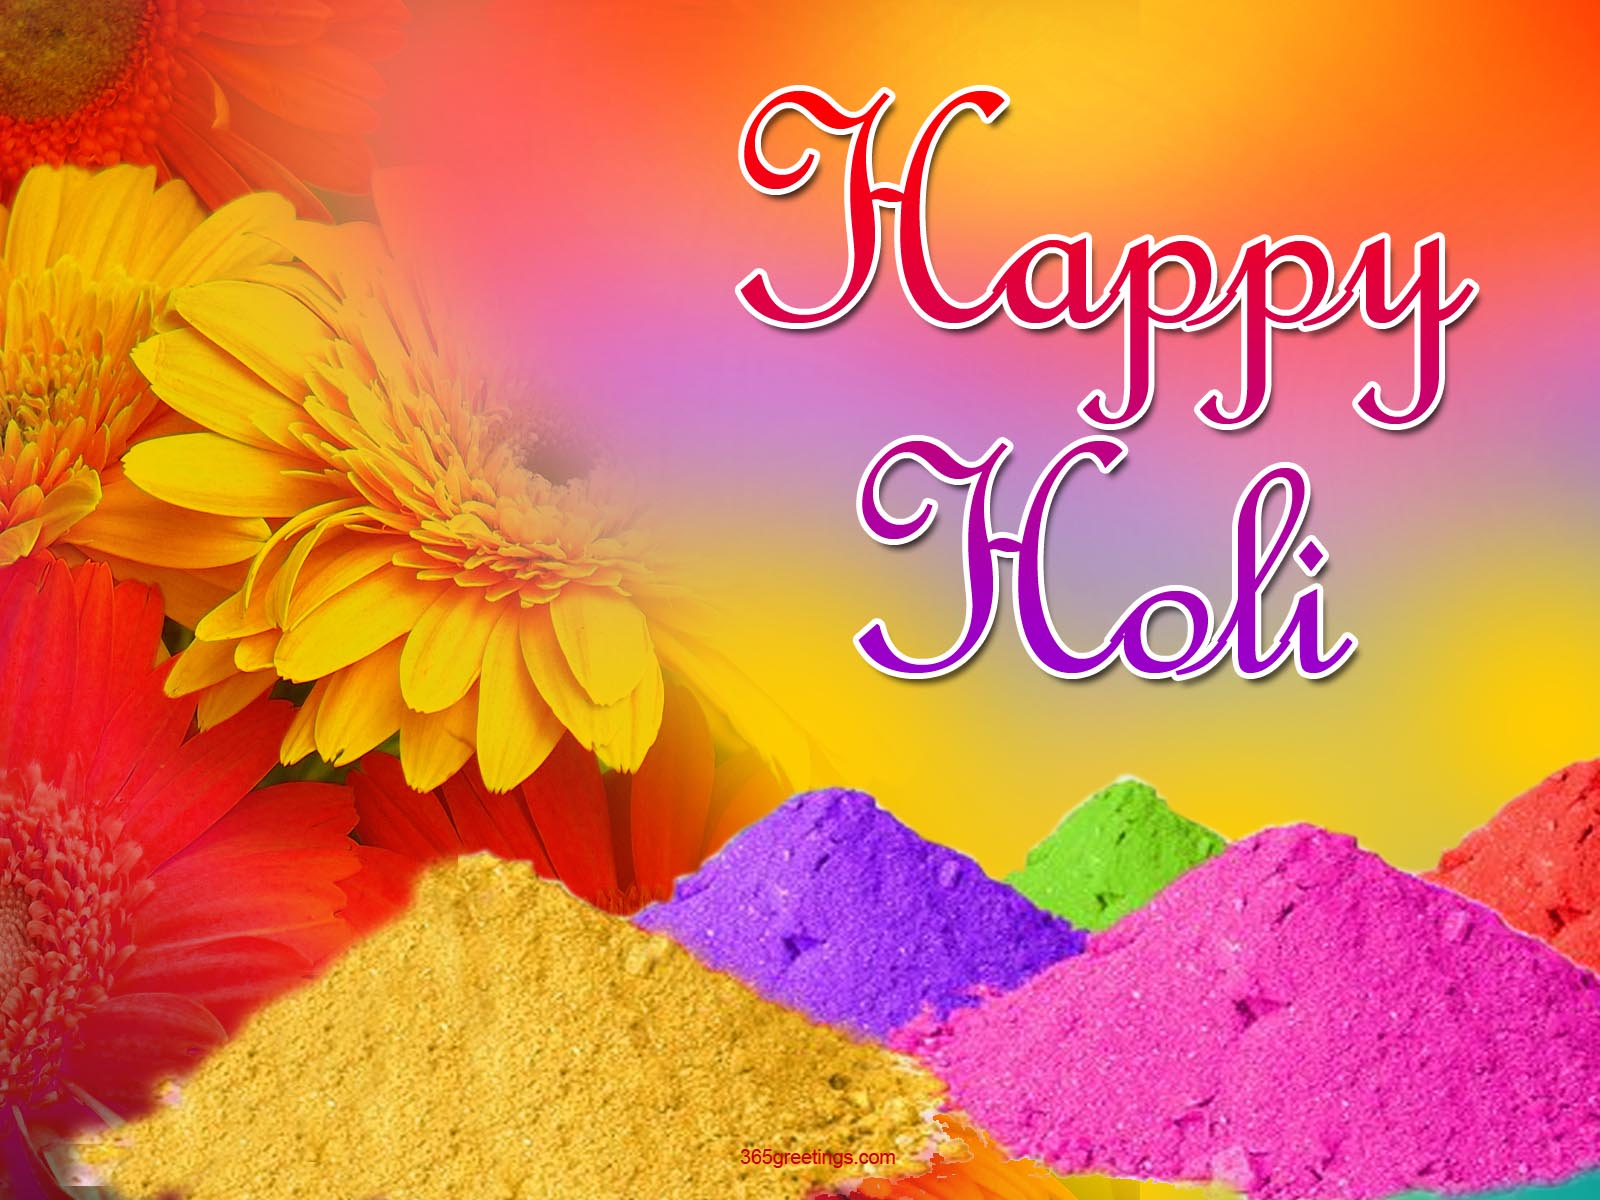 Top 101 Reviews: Happy Holi Wallpapers, Download Free Happy Holi Wallpaper 2012